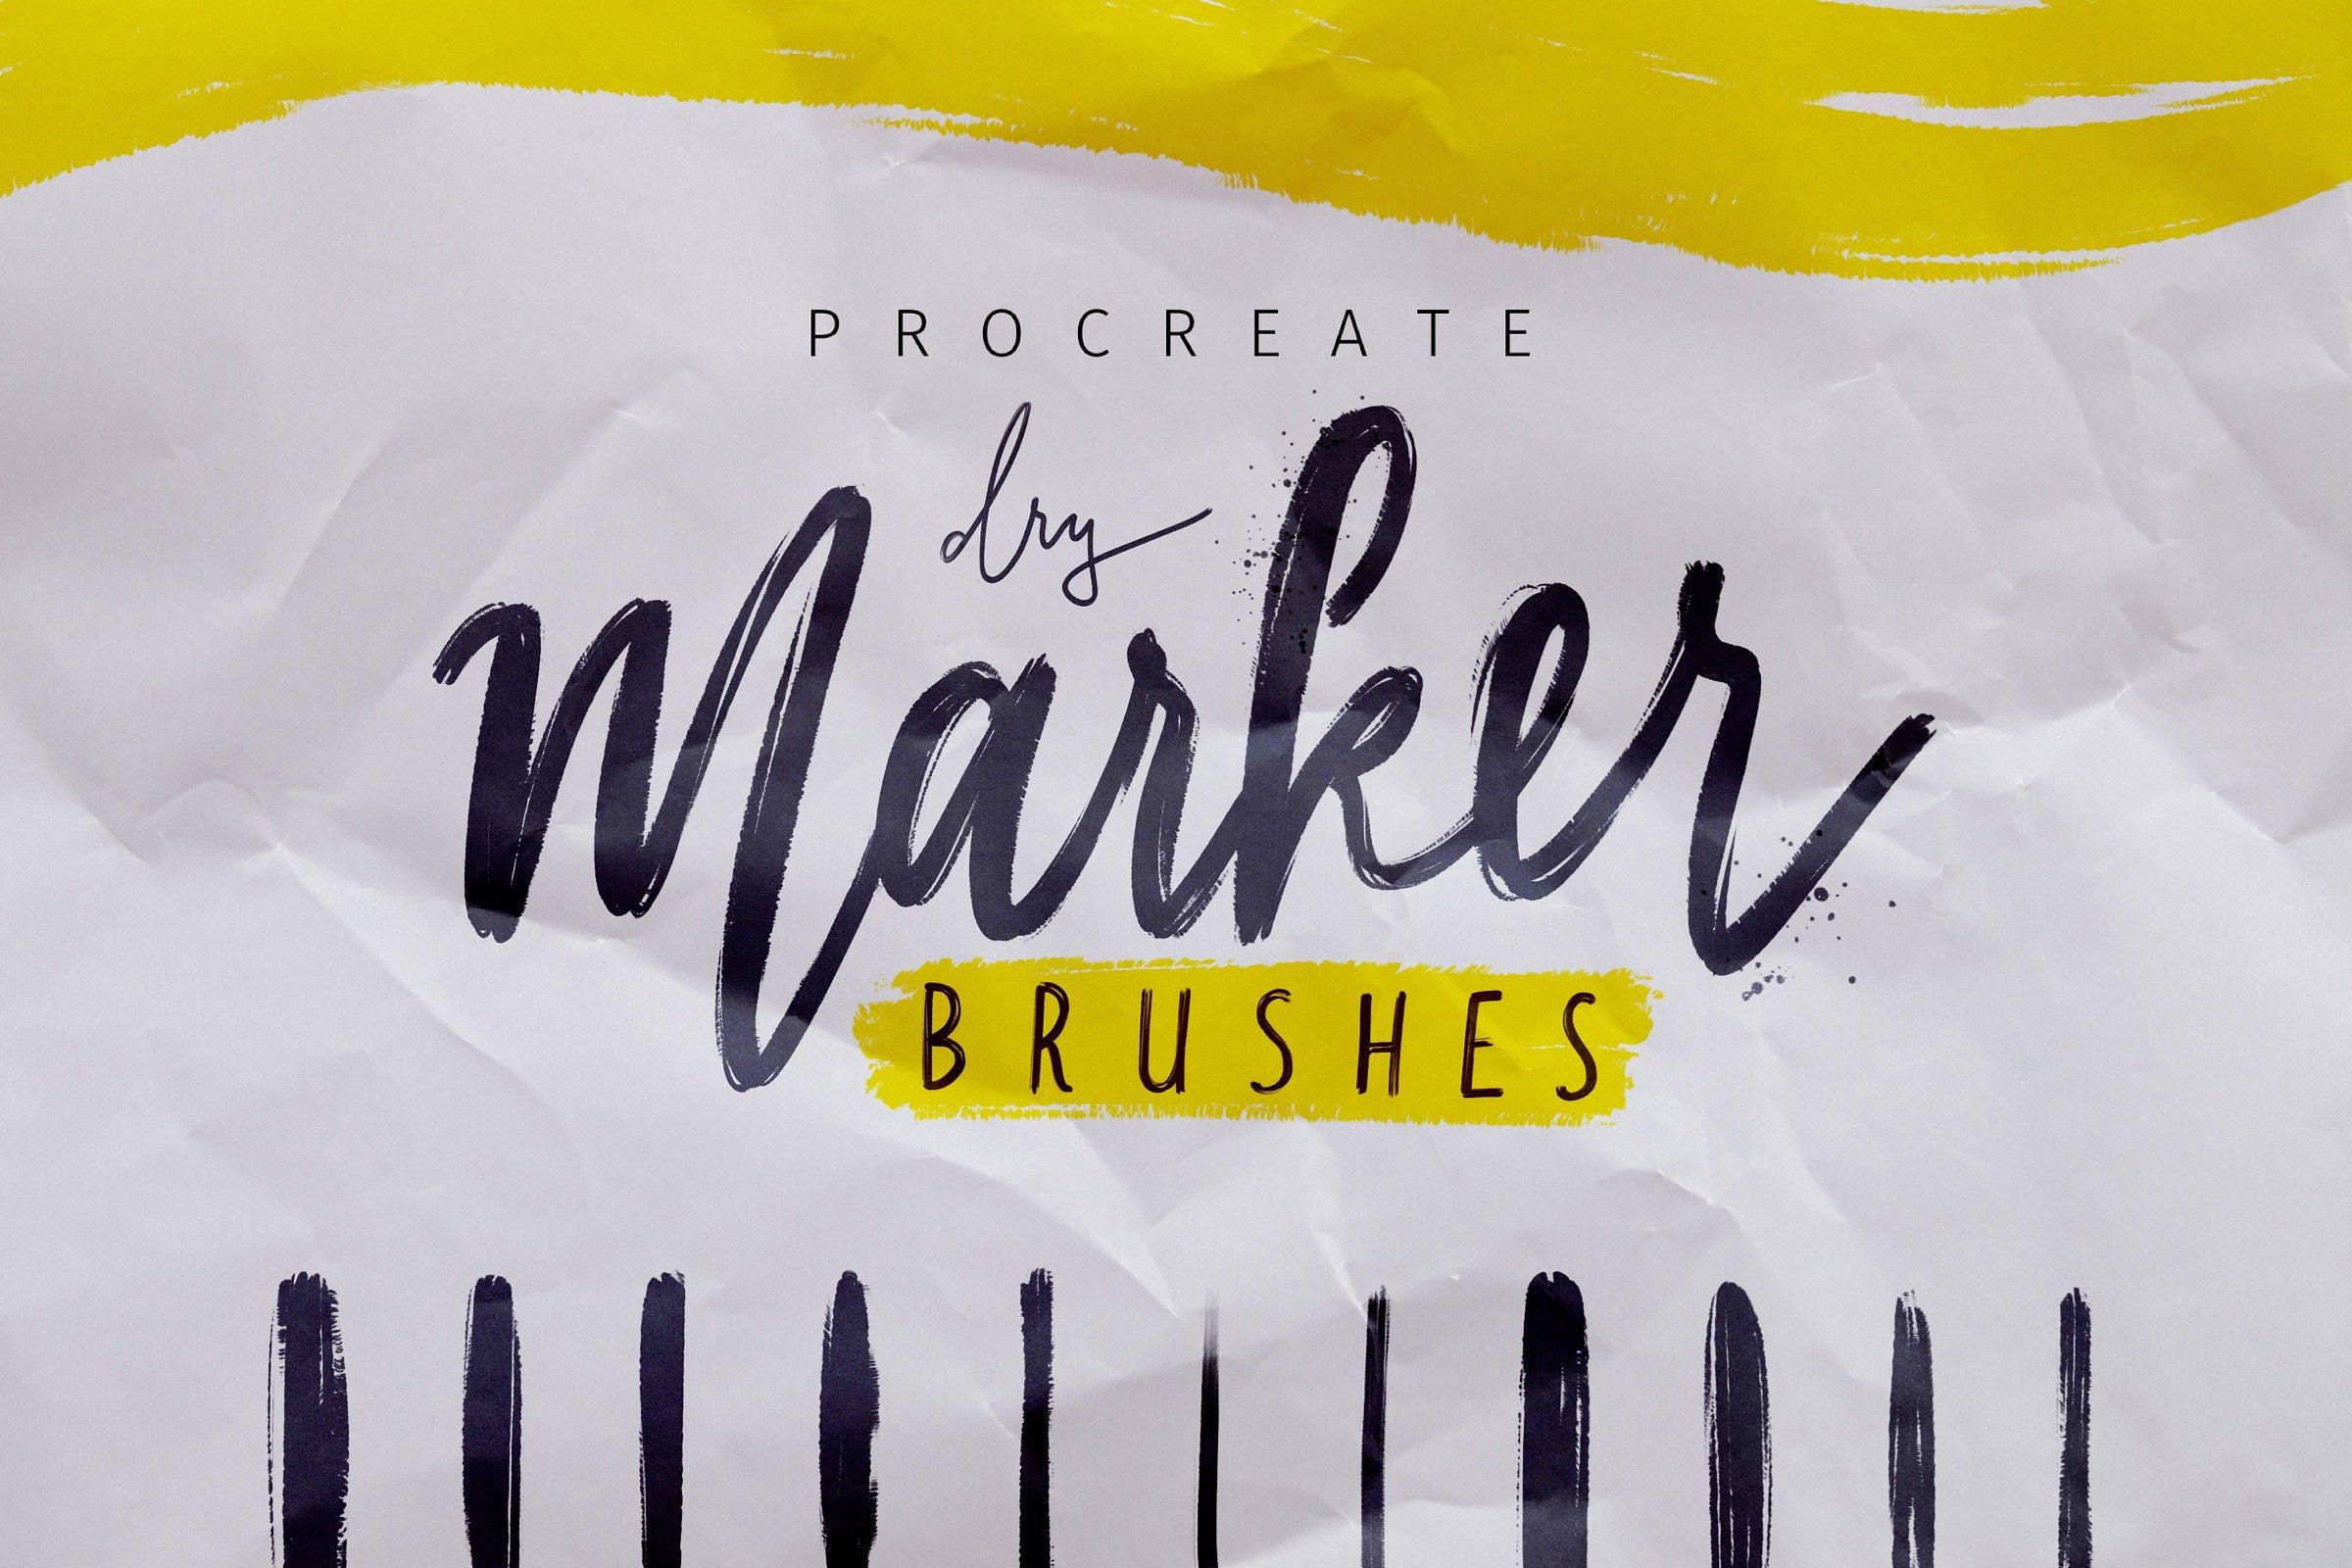 Procreate Dry Marker Brushes With Images Procreate Lettering